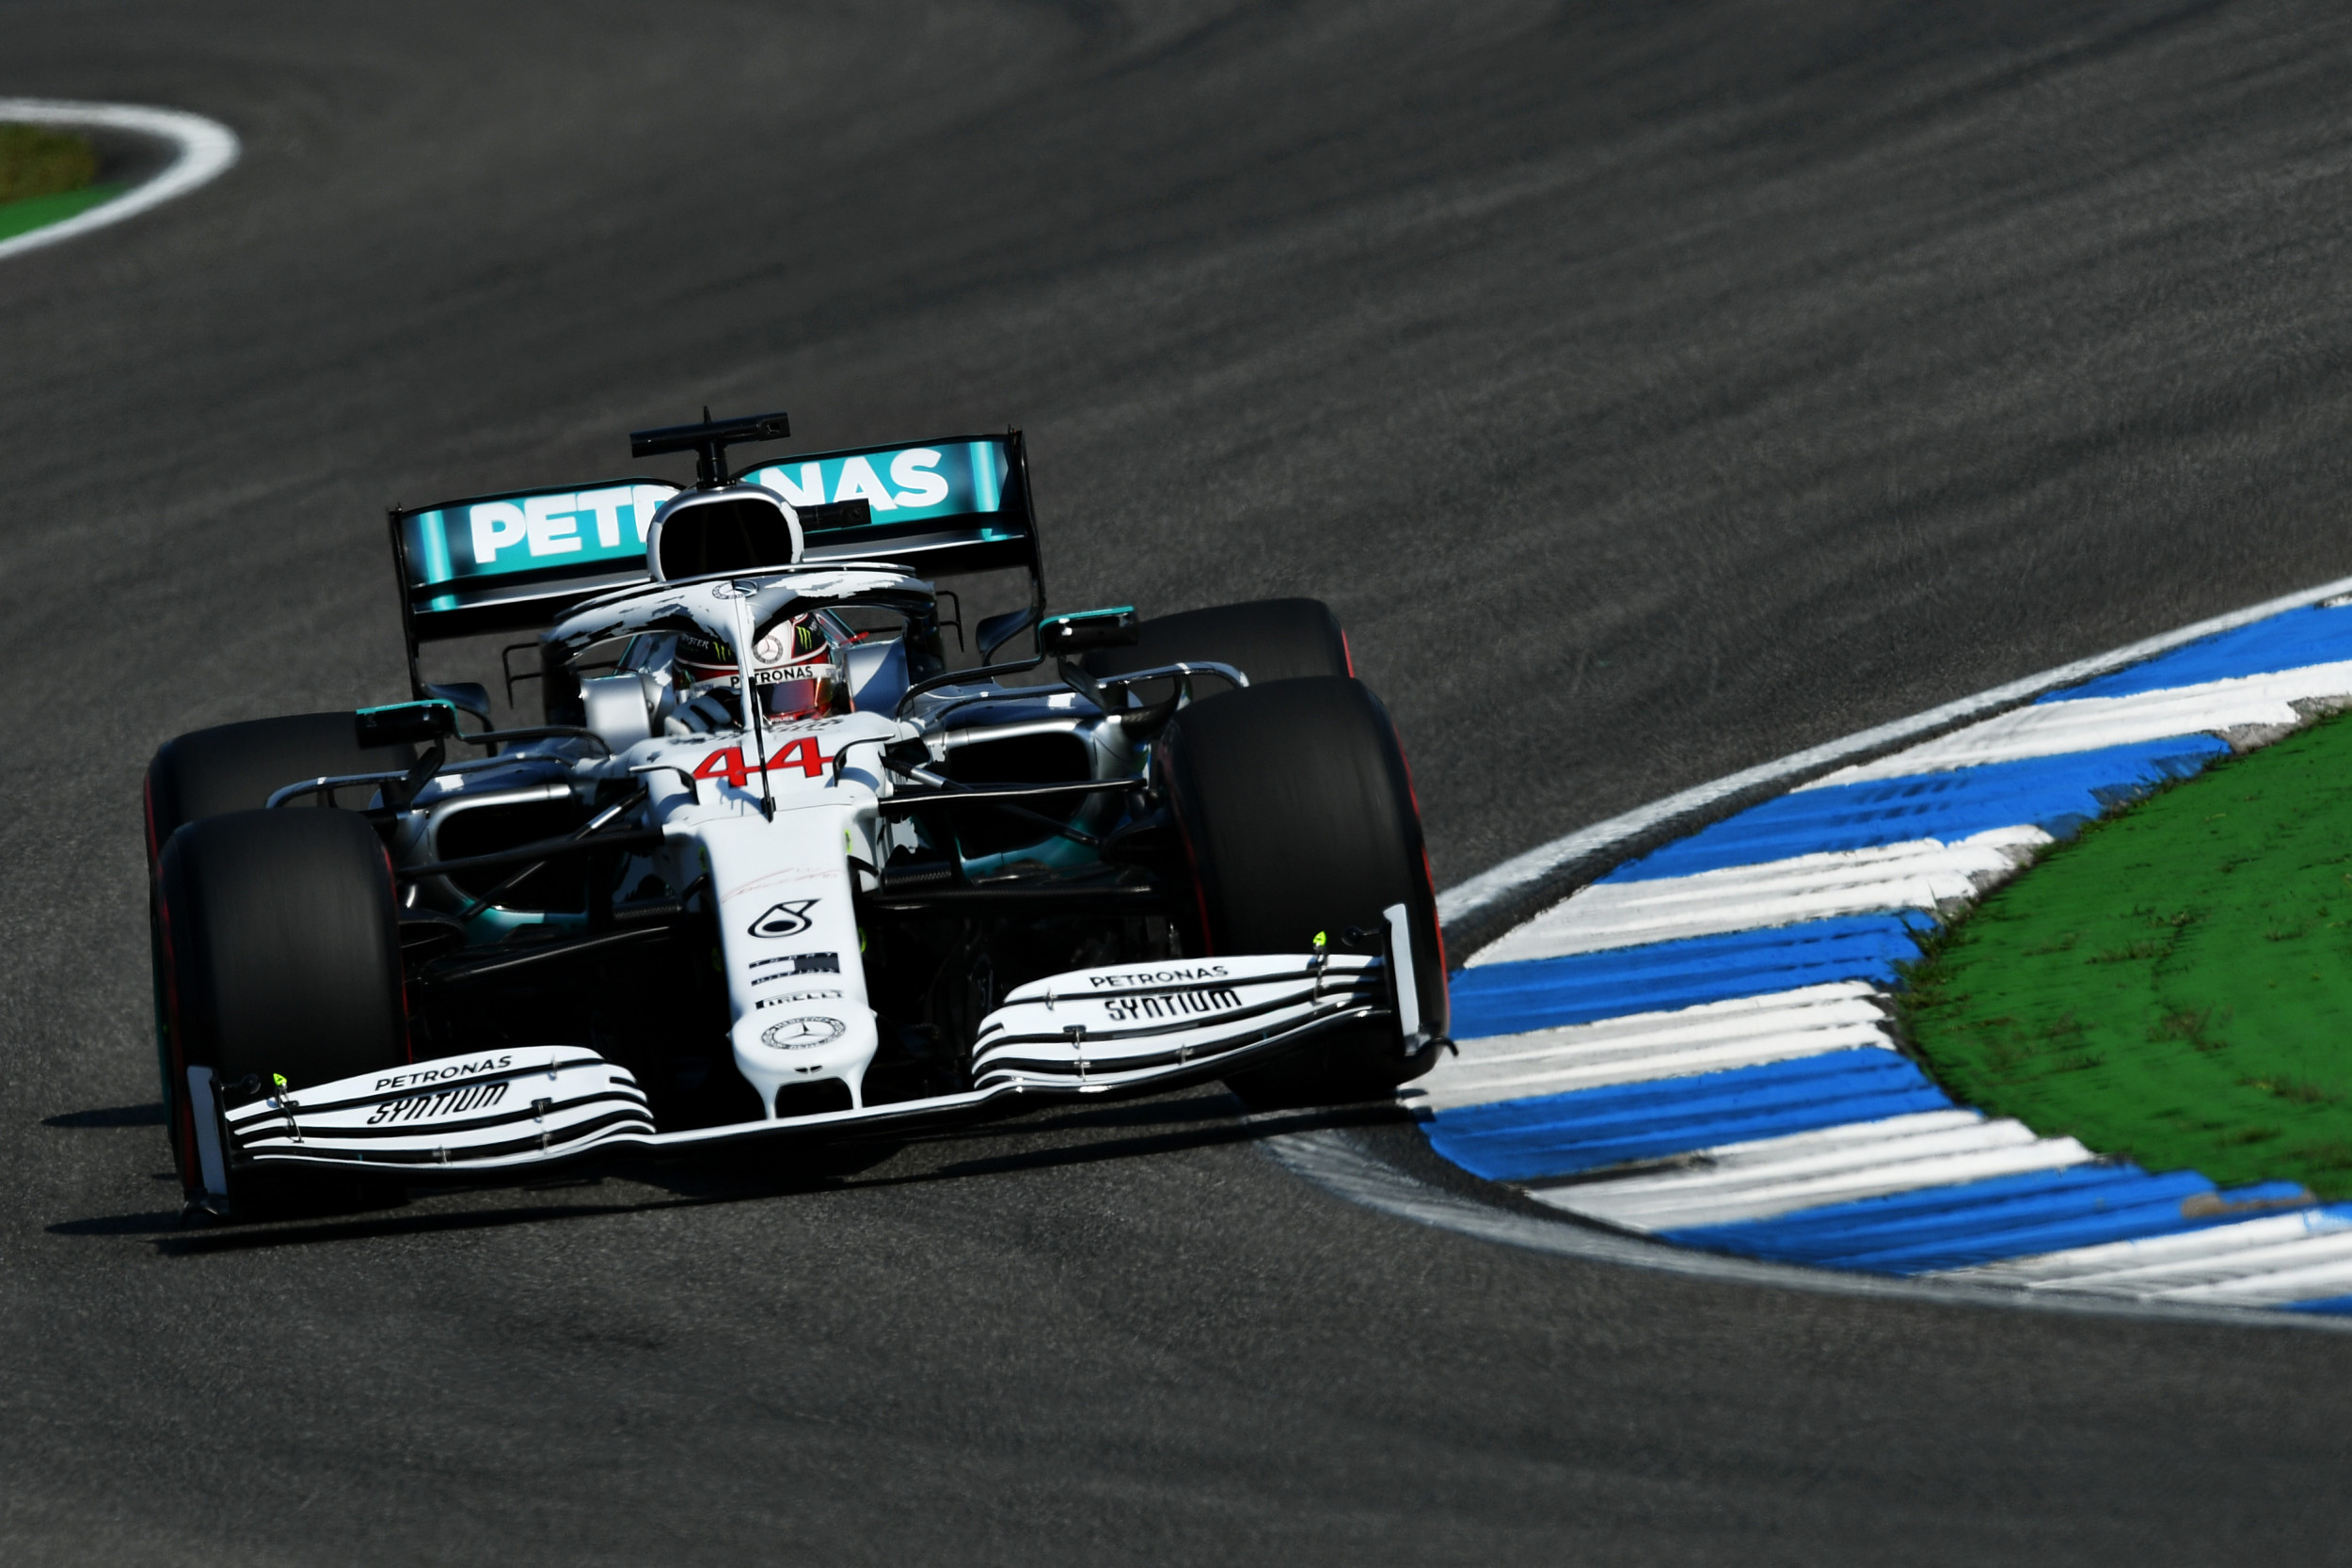 F1 German Grand Prix: Start Time, TV Channel, Live Stream and Latest